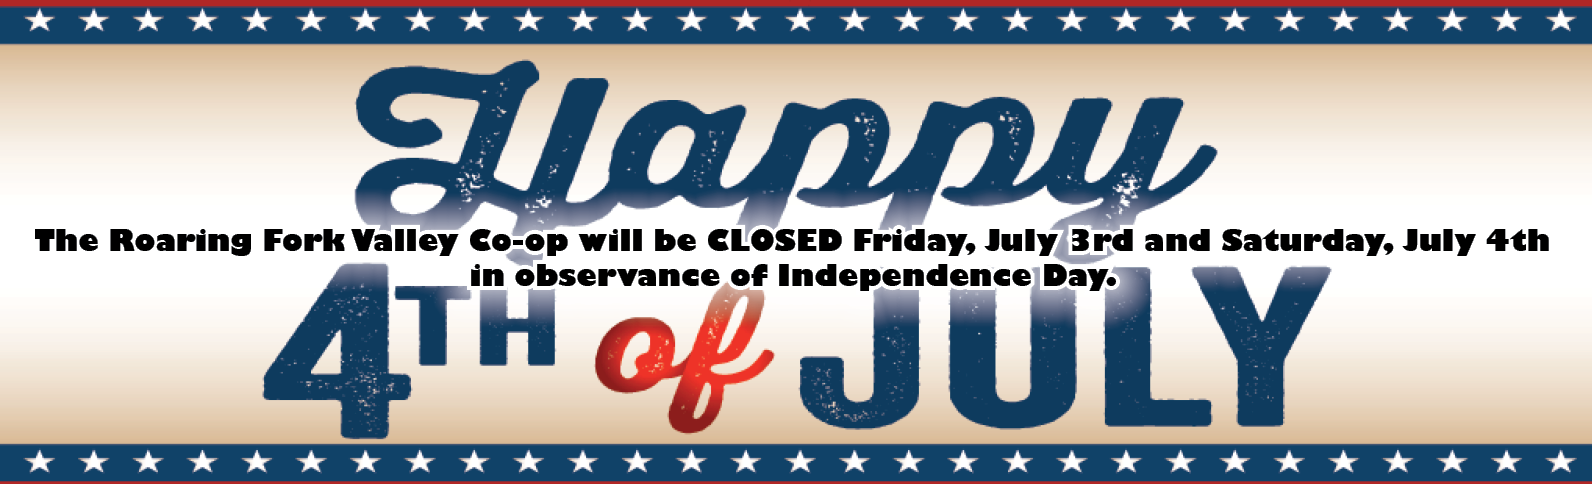 The Roaring Fork Valley Co-op will be CLOSED Friday, July 3rd and Saturday, July 4th in observance of Independence Day.